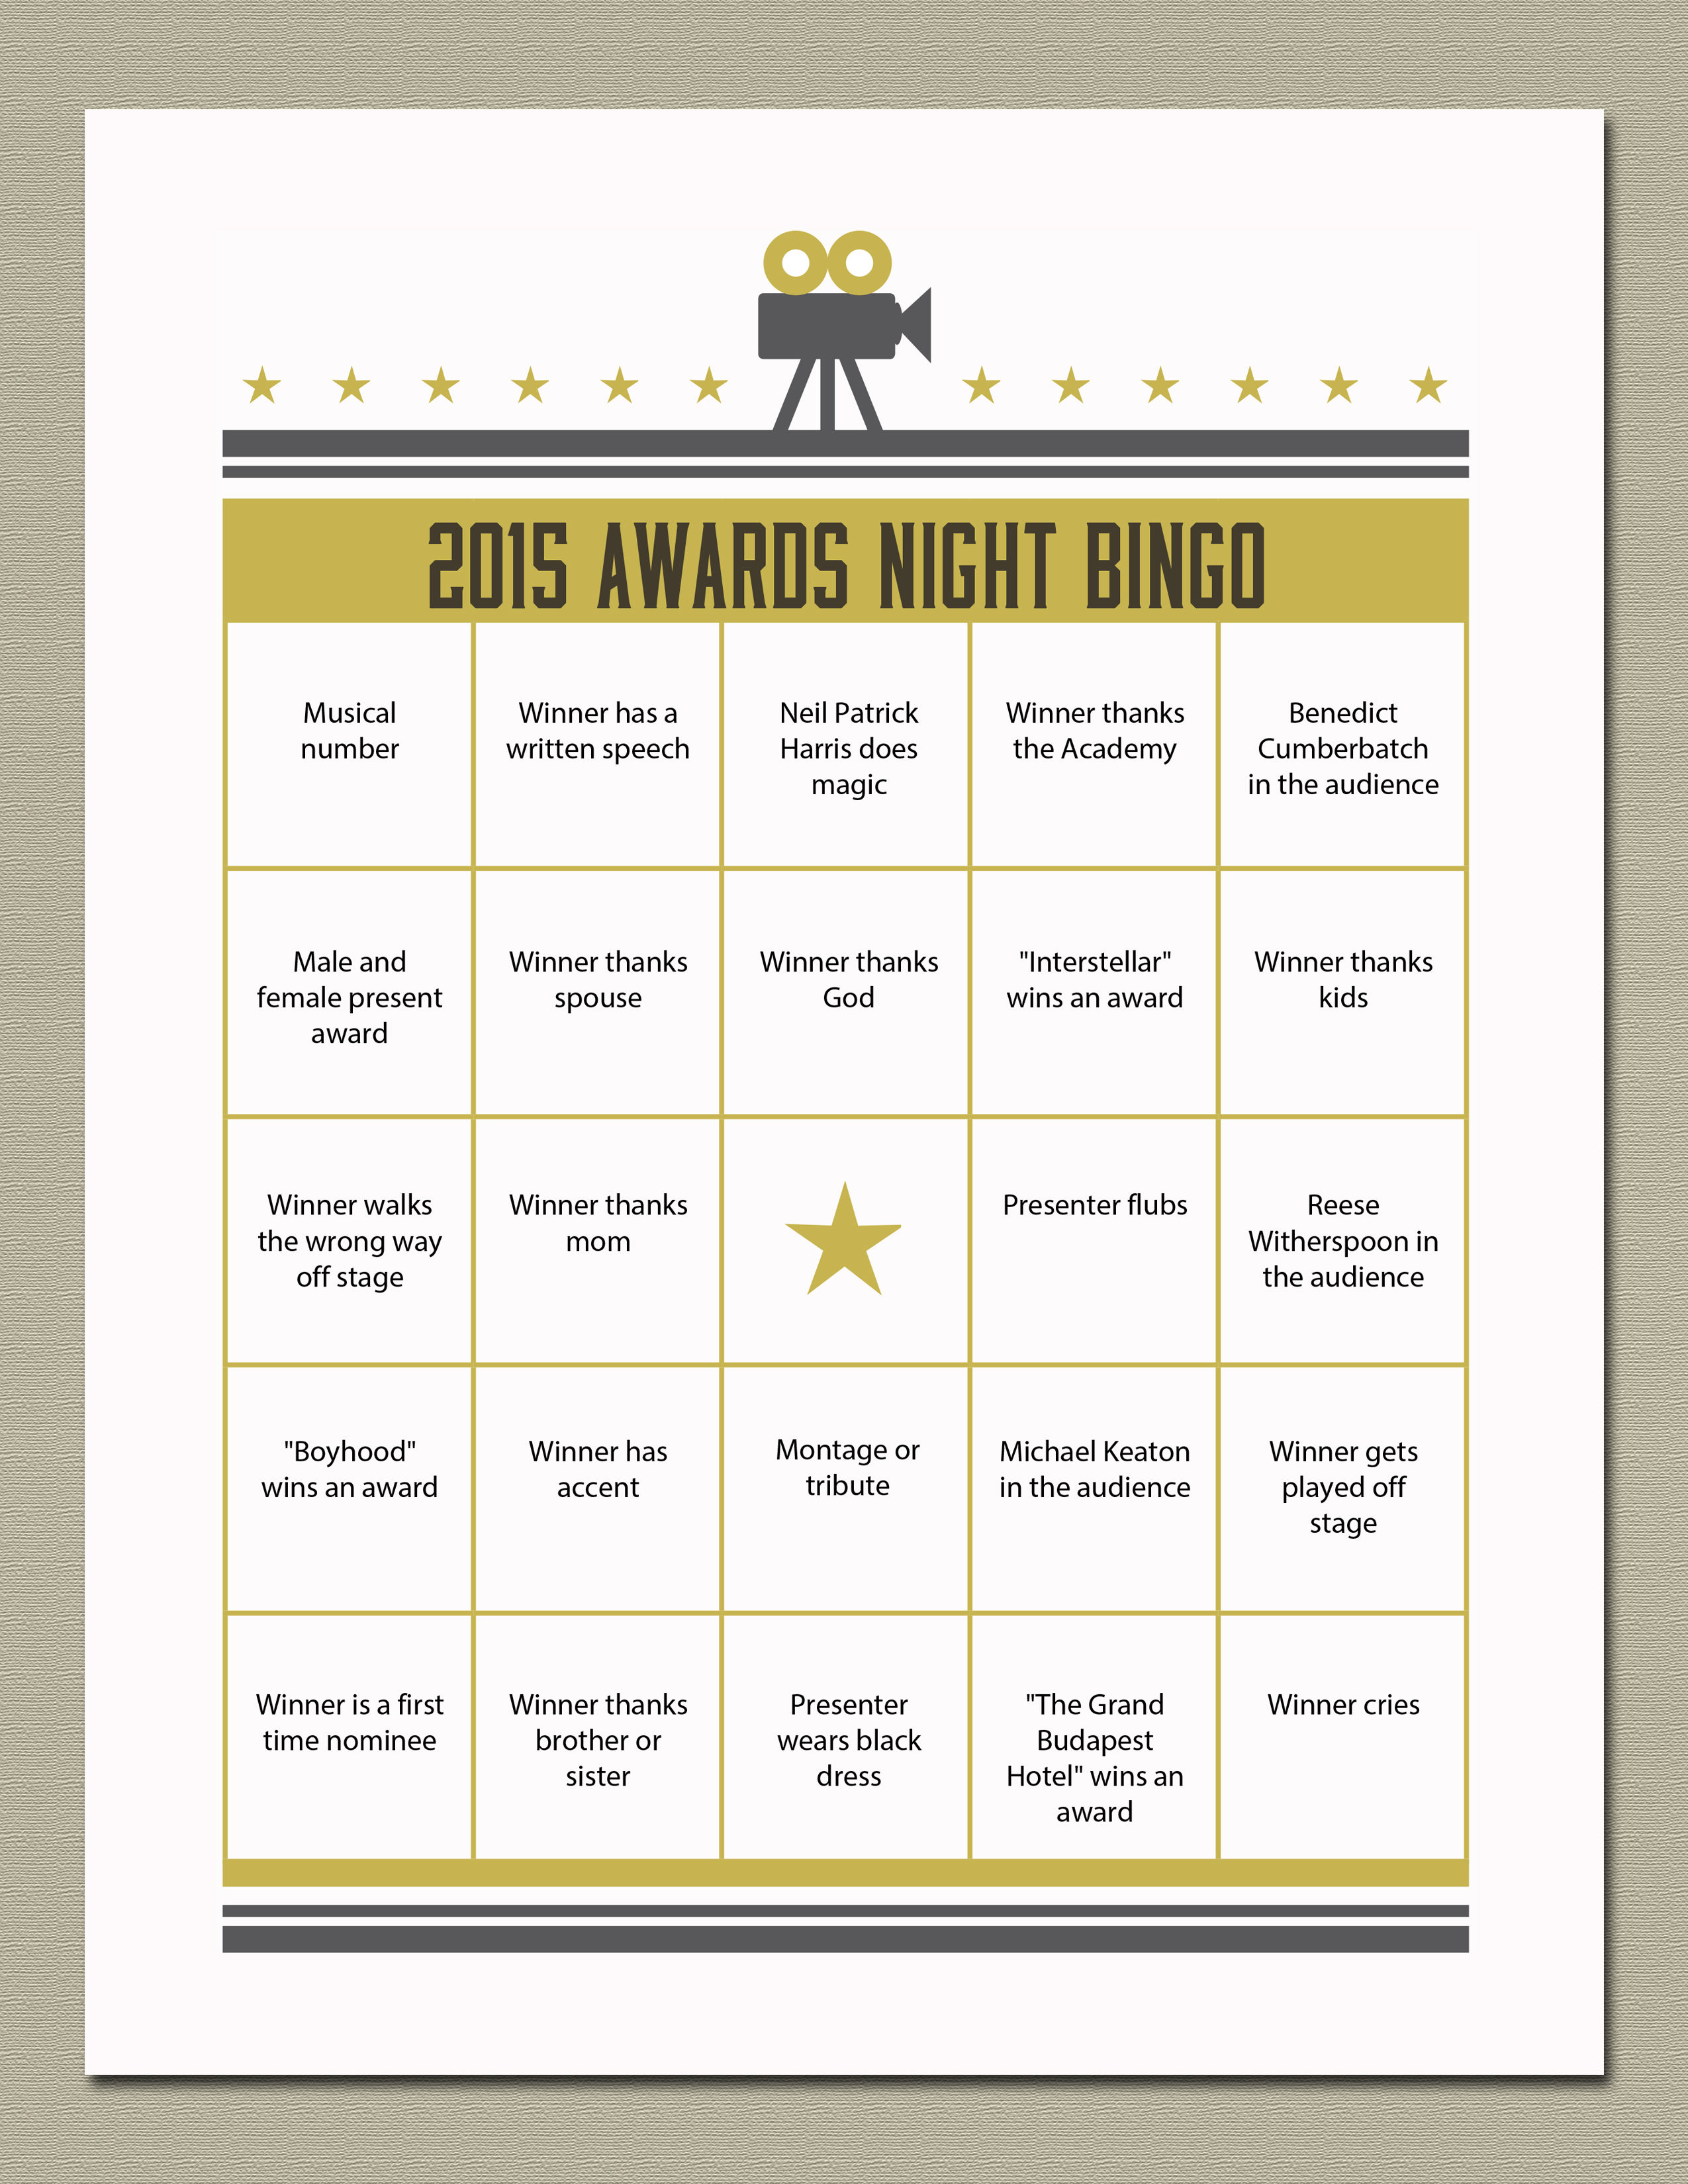 Wel e Adulthood Free Printable Graduation Cards likewise Voting Ballot Template likewise Tony Awards Ballot Printable in addition Printable Ballot For 2015 Oscars in addition Pot Luck. on oscar party 2016 ballot